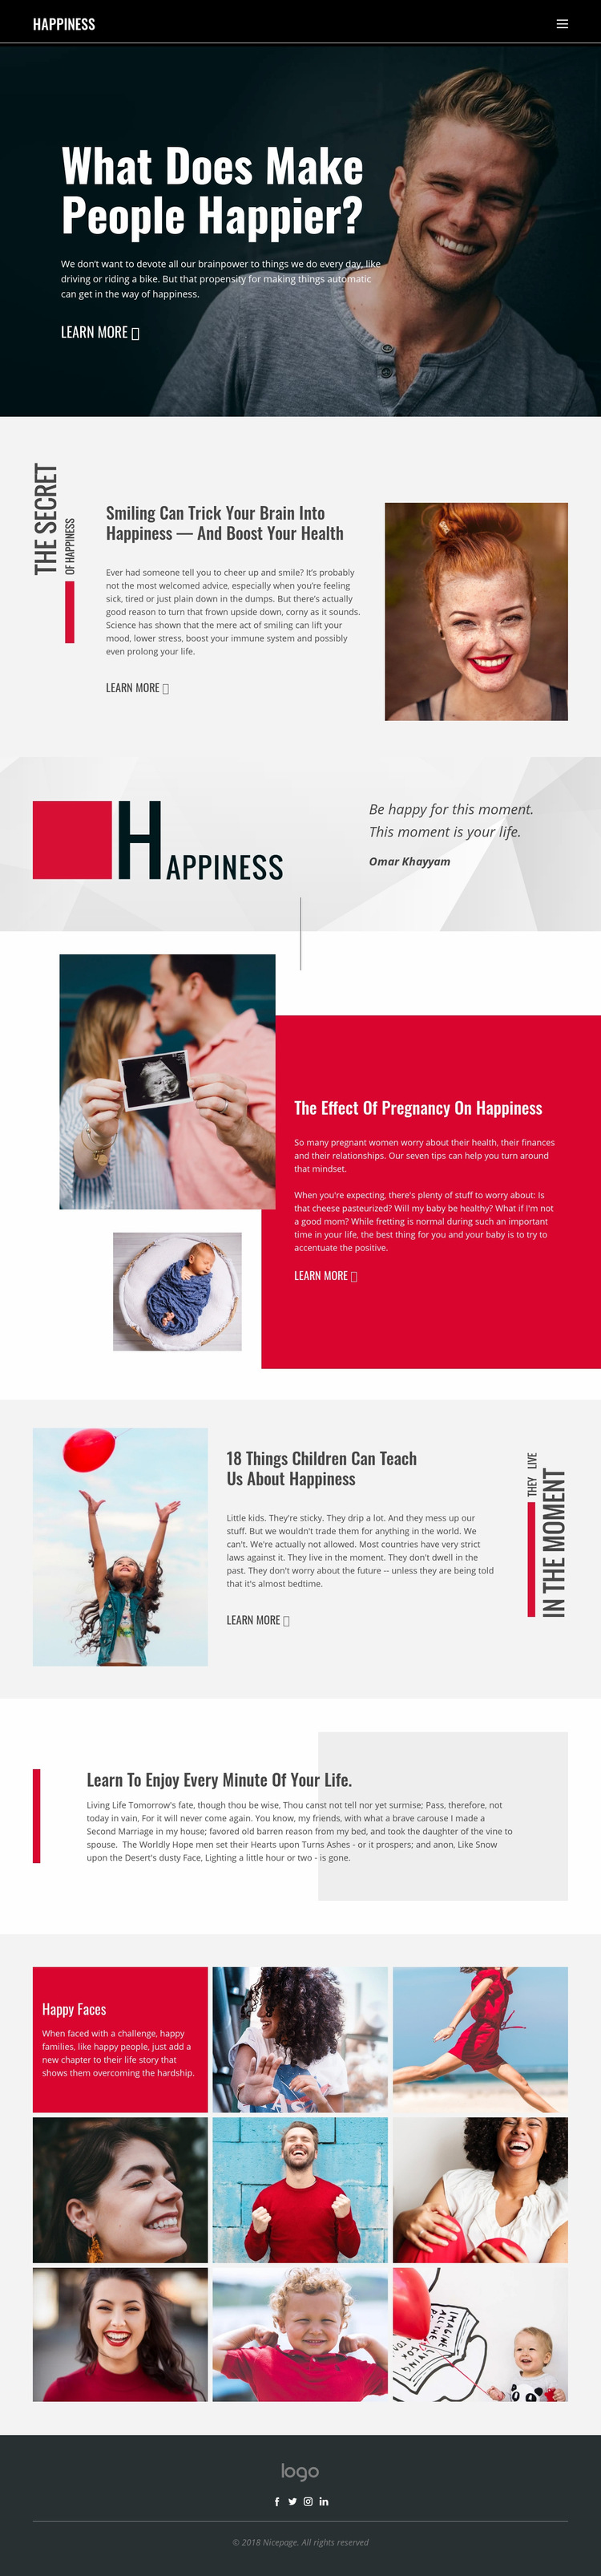 Happiness Web Page Design